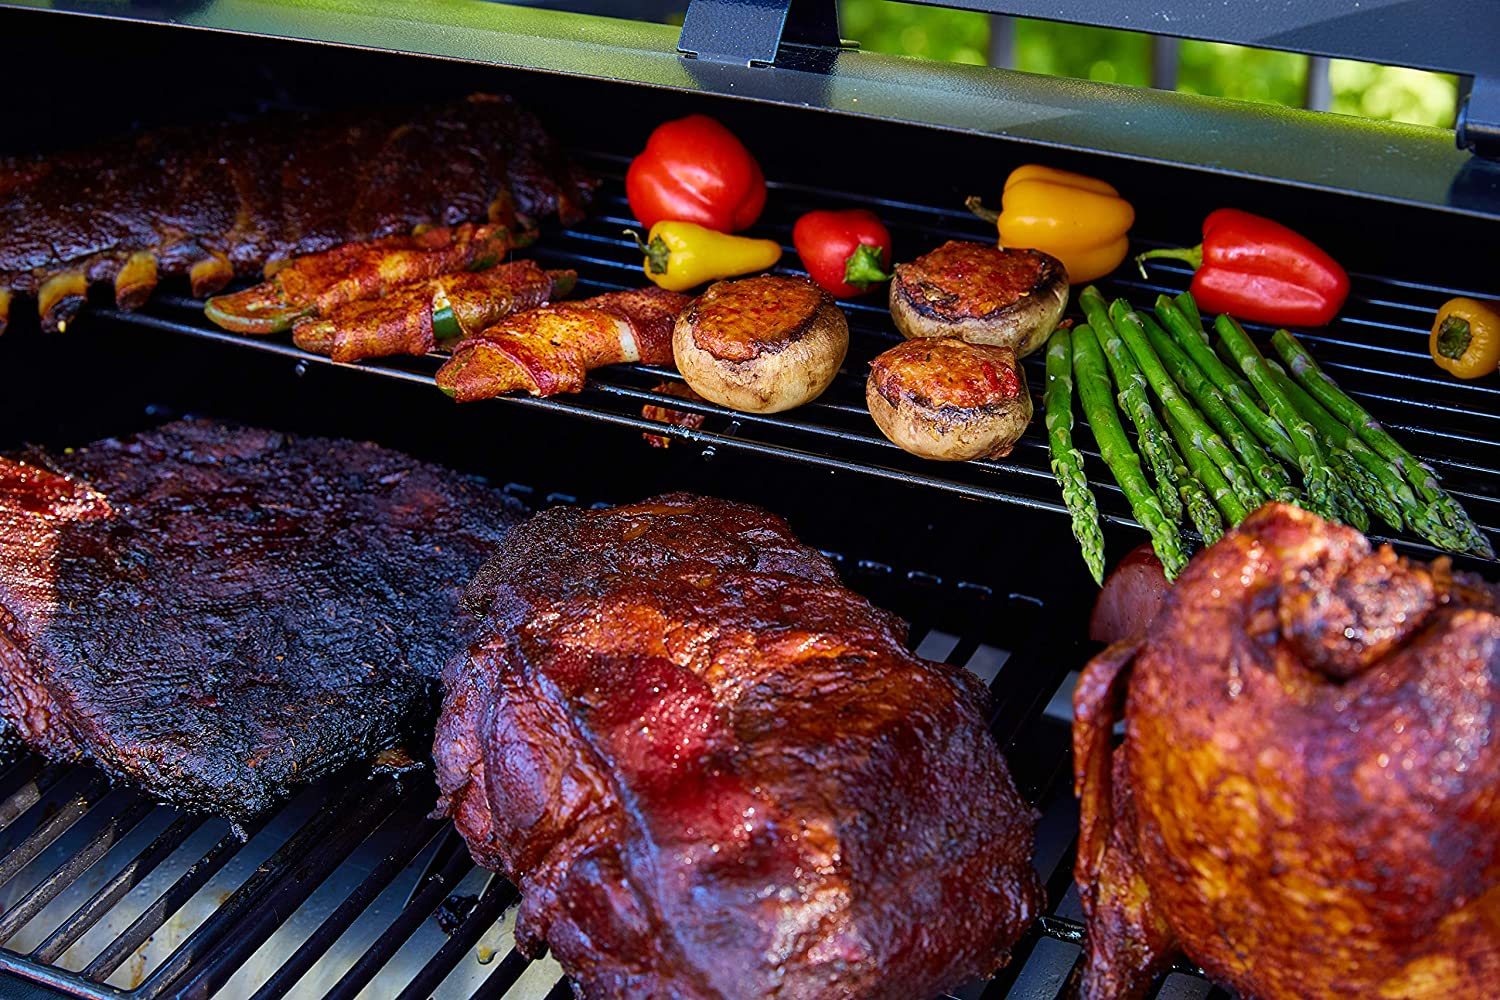 meat and veggies on a grill.